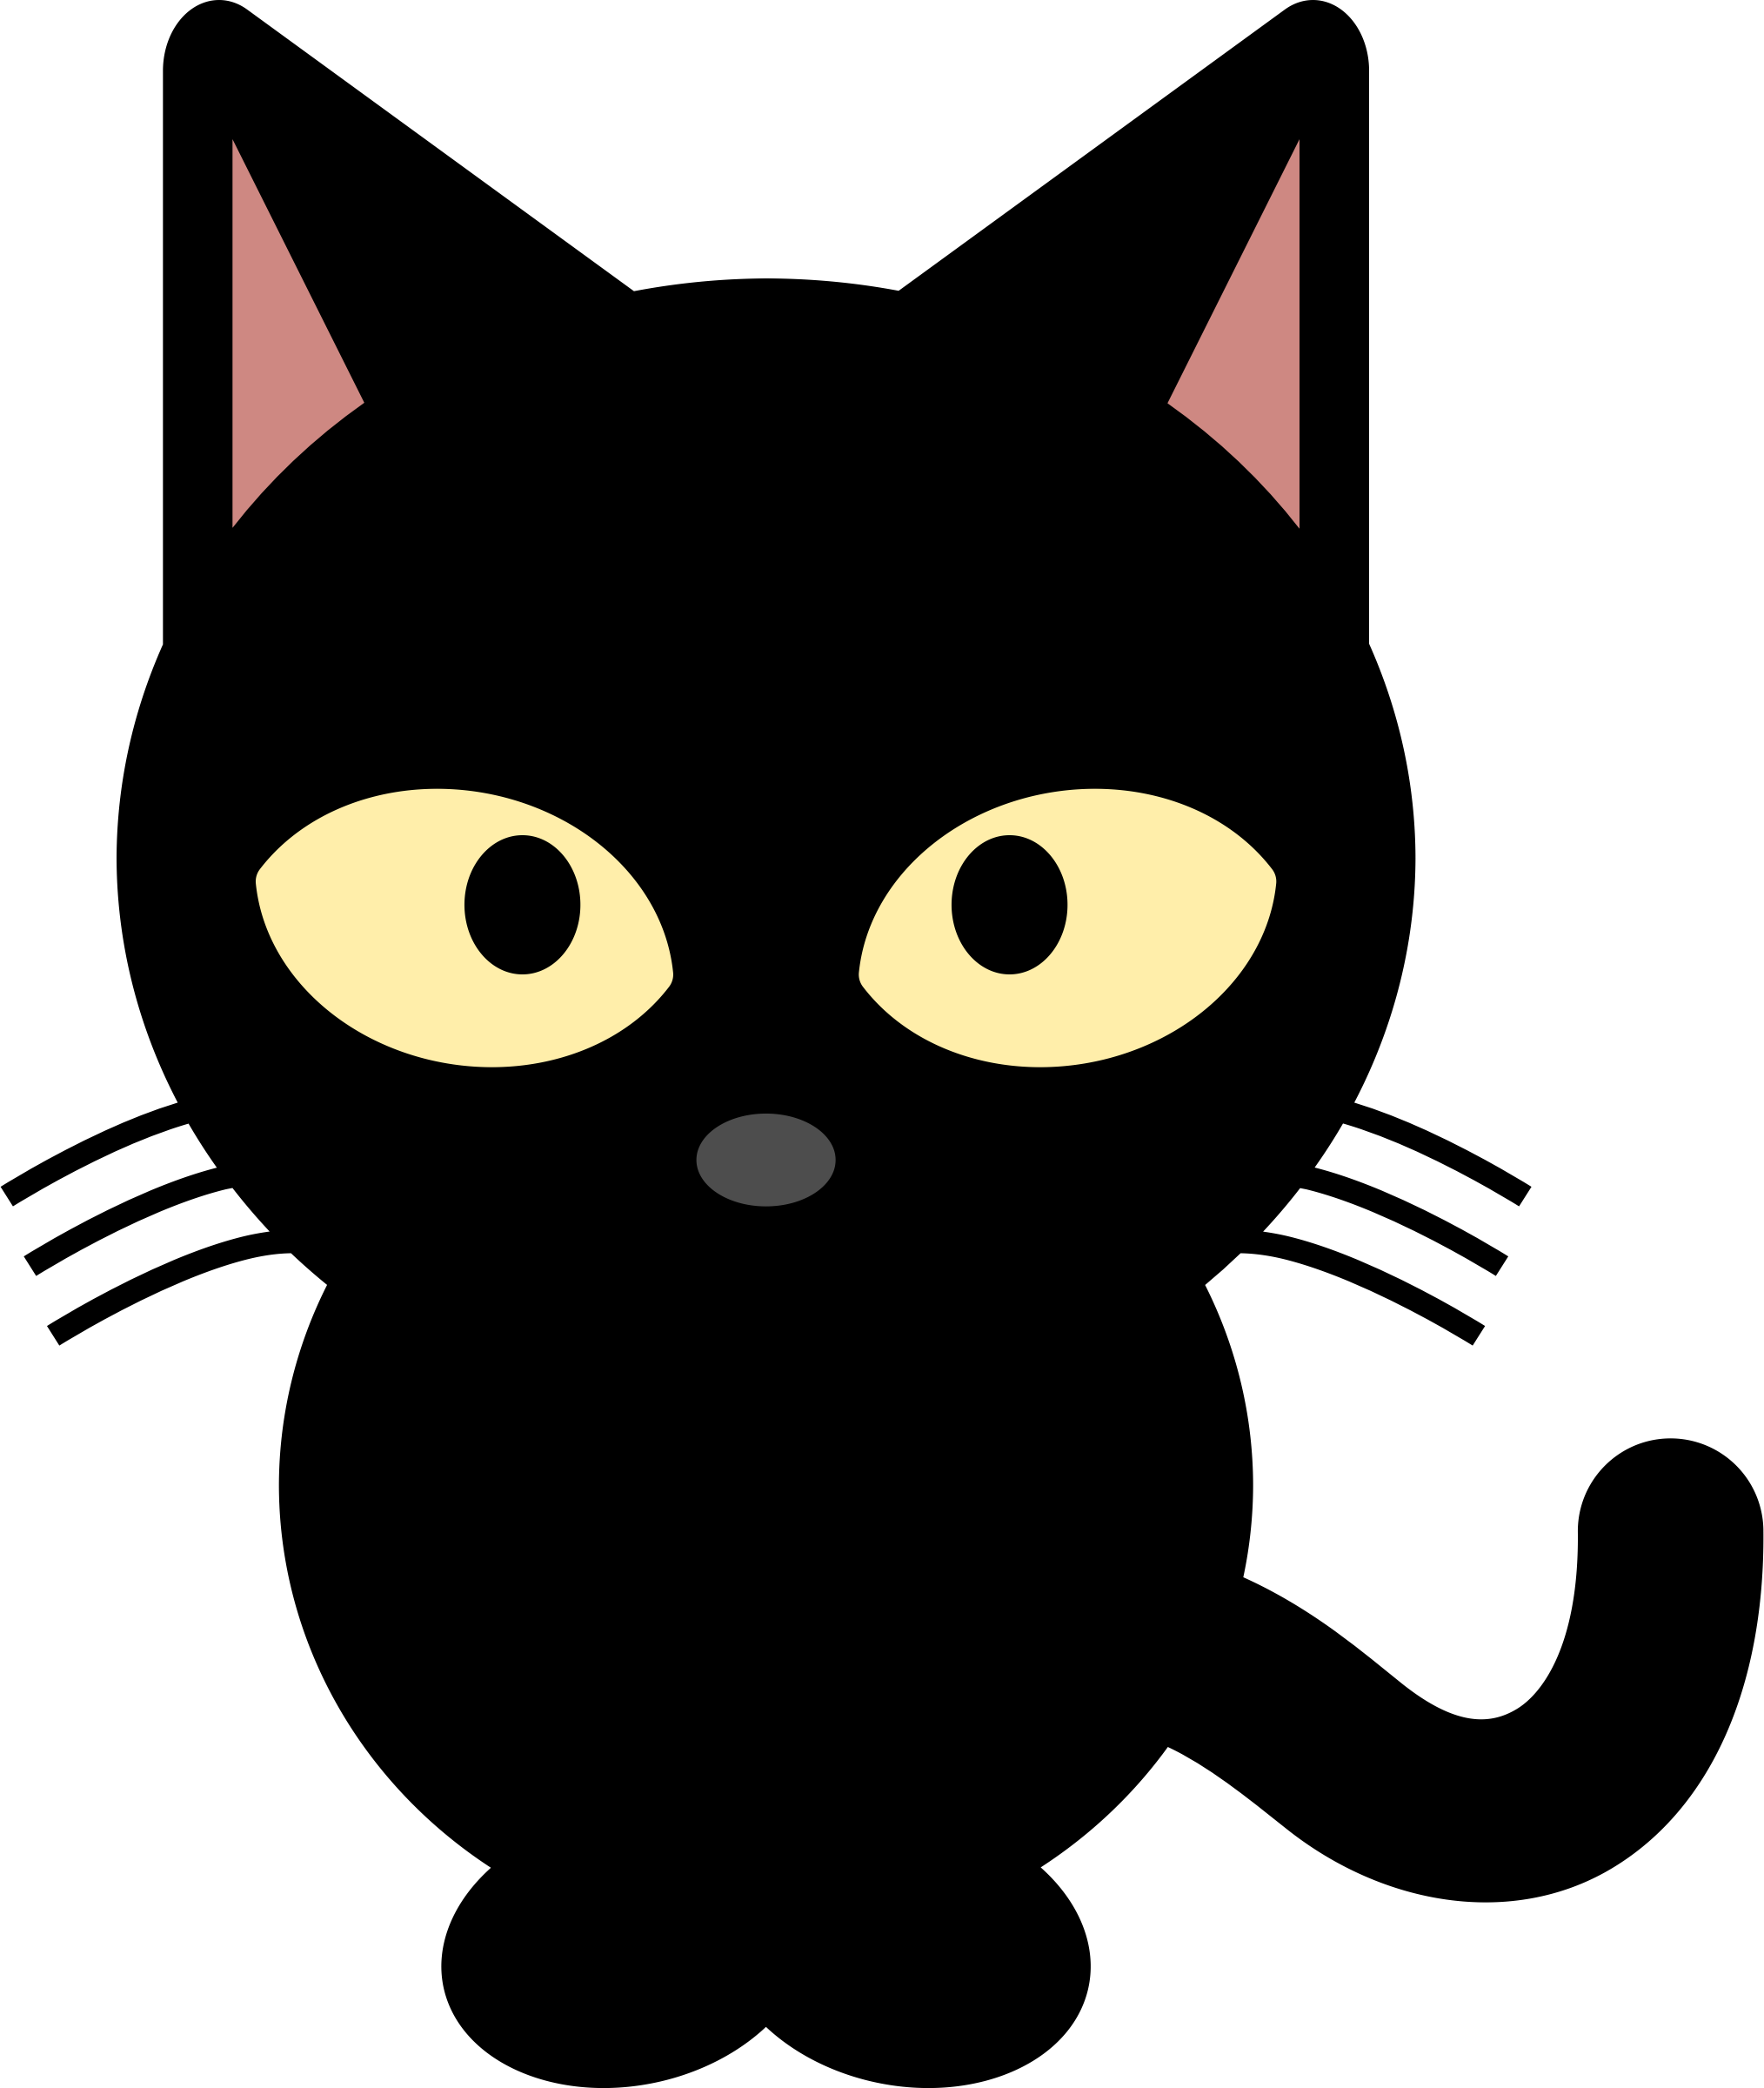 Cat cartoon png. Black group by libberry